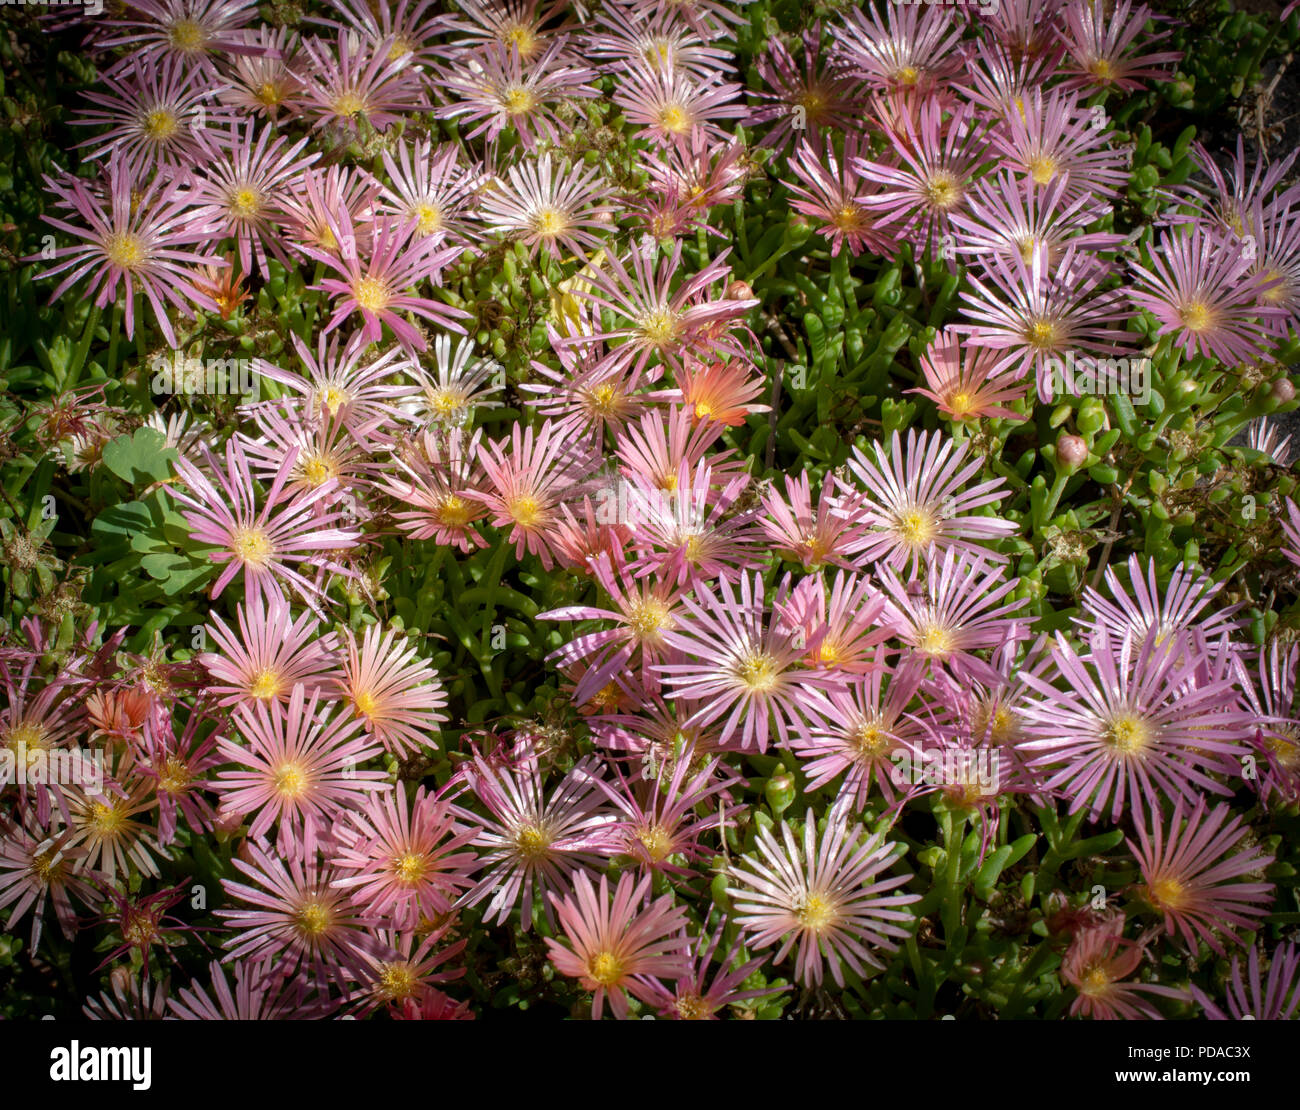 Pink Ice Plant Flowers - Stock Image